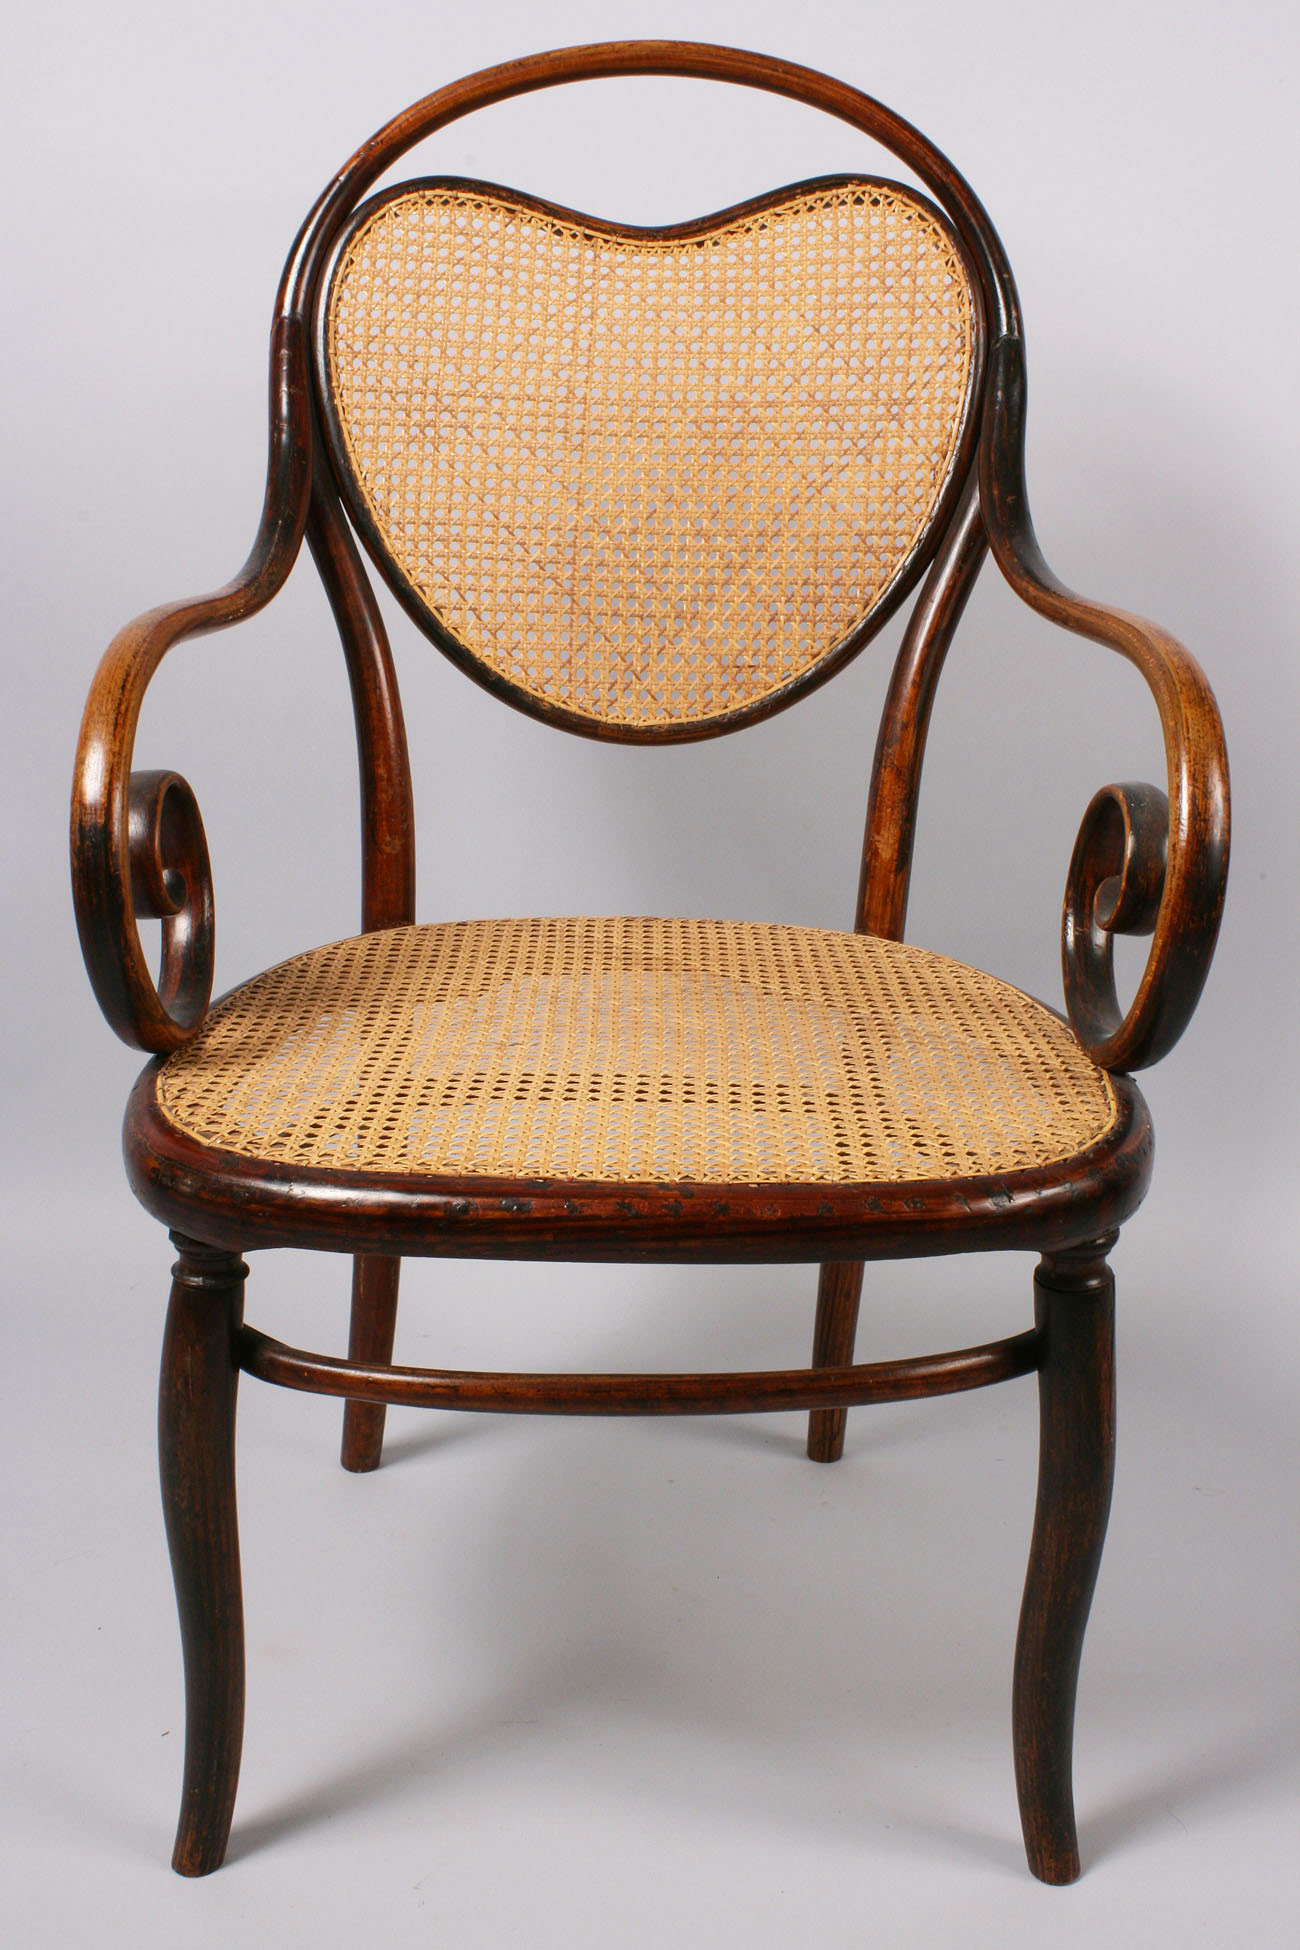 Lot 147 Thonet Bentwood Model 3 Armchair & side chair